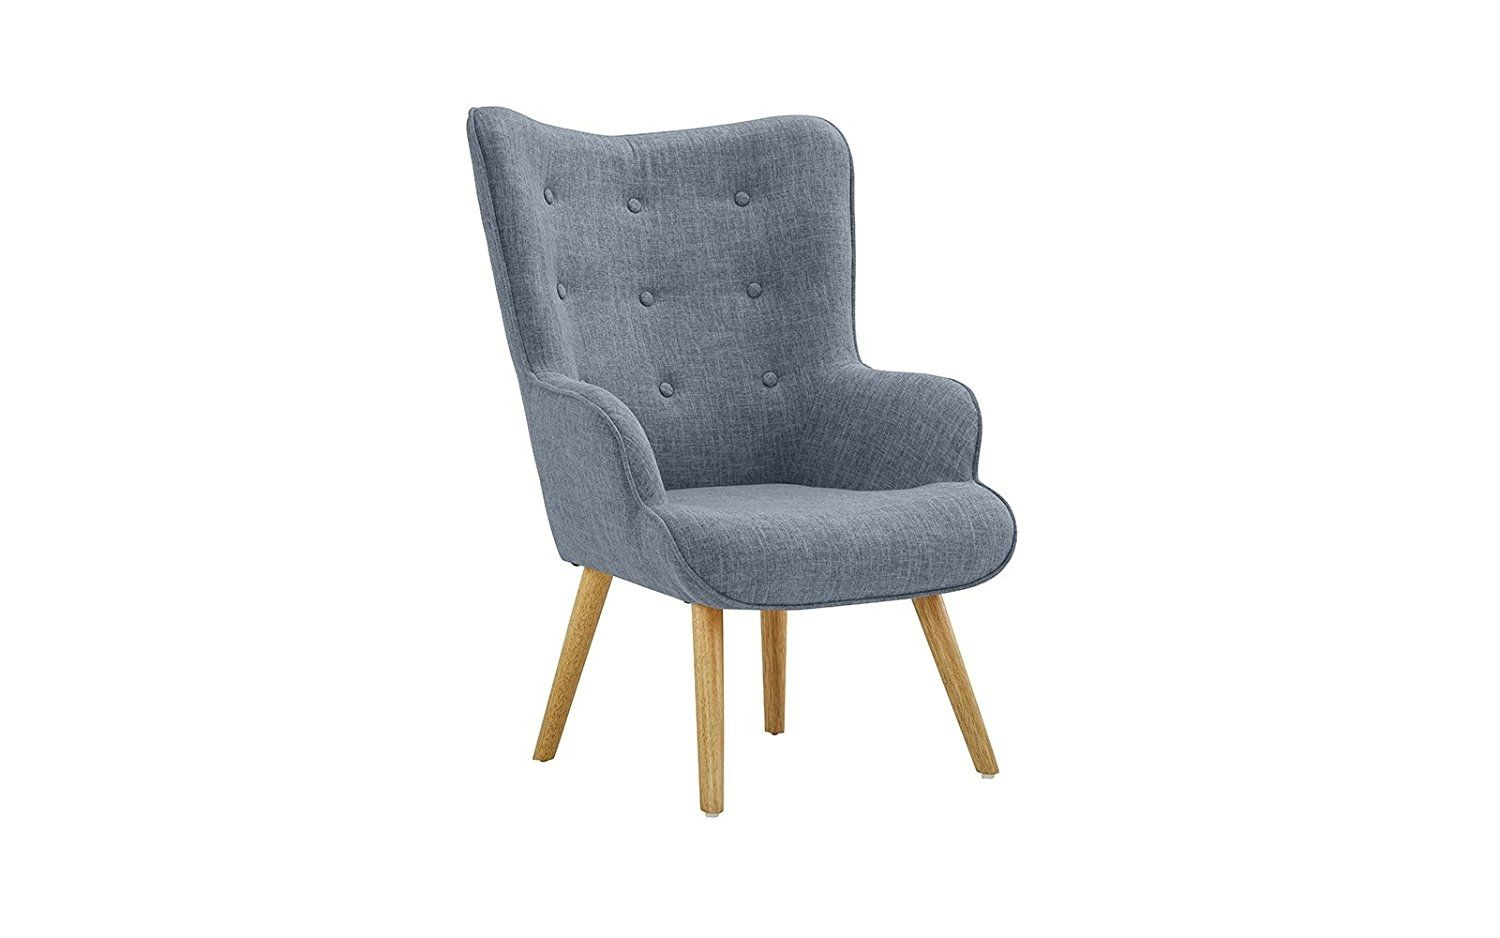 Outstanding Accent Chair For Living Room Upholstered Linen Arm Chairs Ibusinesslaw Wood Chair Design Ideas Ibusinesslaworg